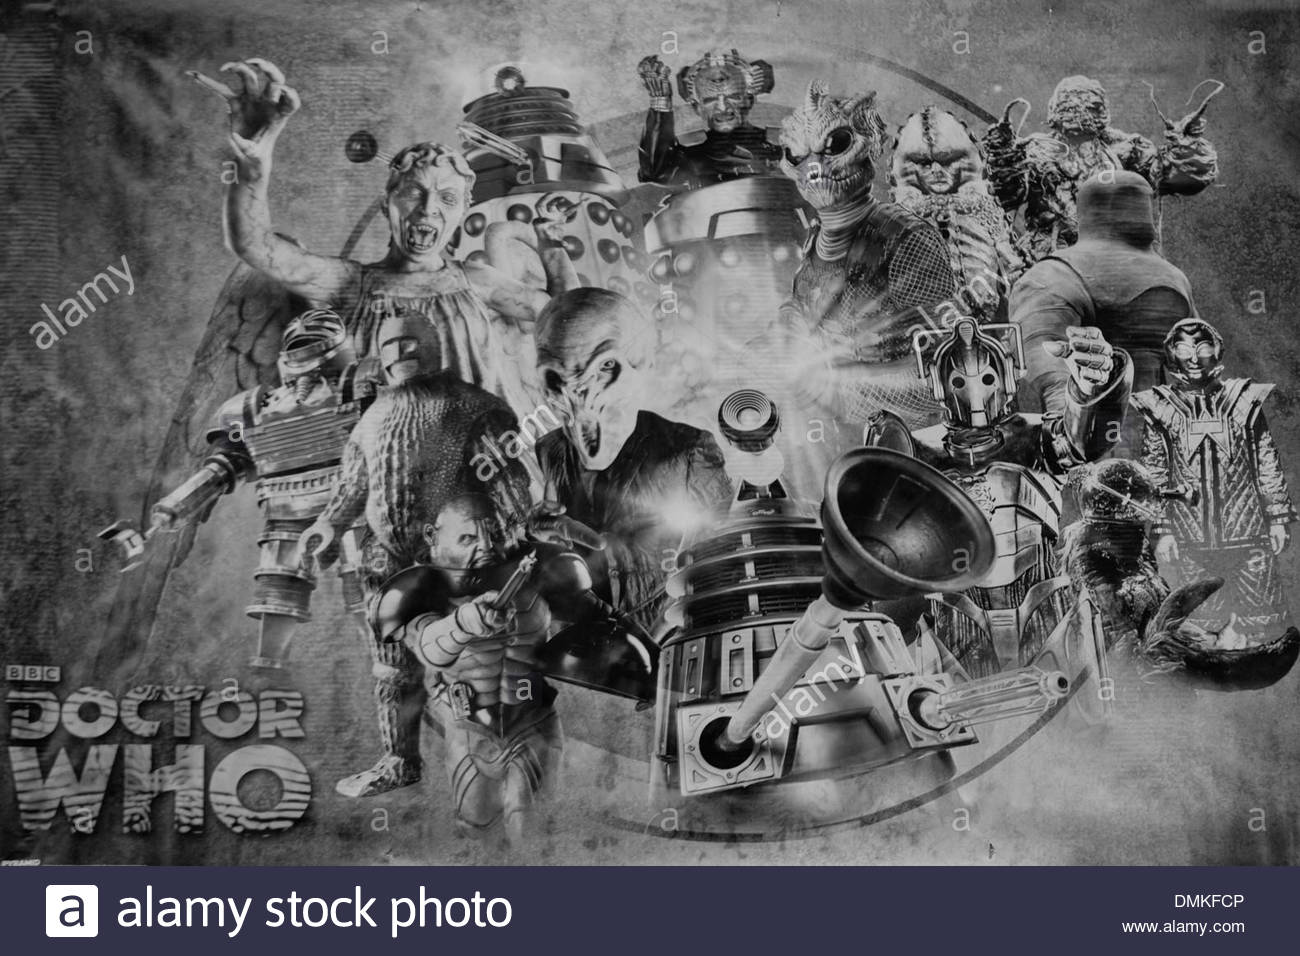 Aliens and monsters from the cult TV programme Doctor Who Poster Black and White - Stock Image